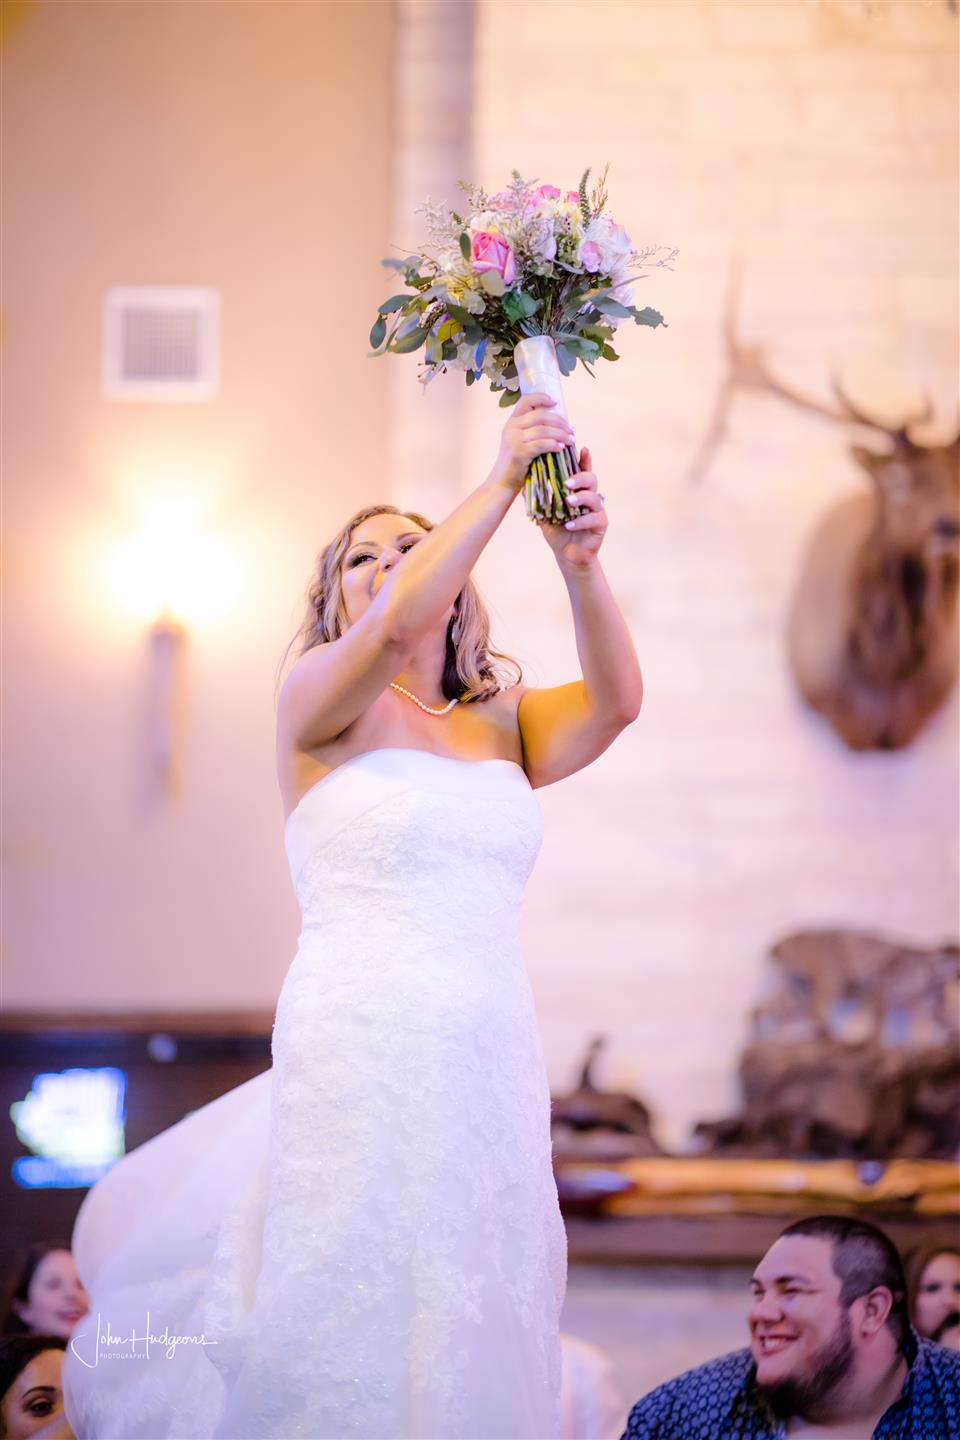 Bride tossing her bouquet